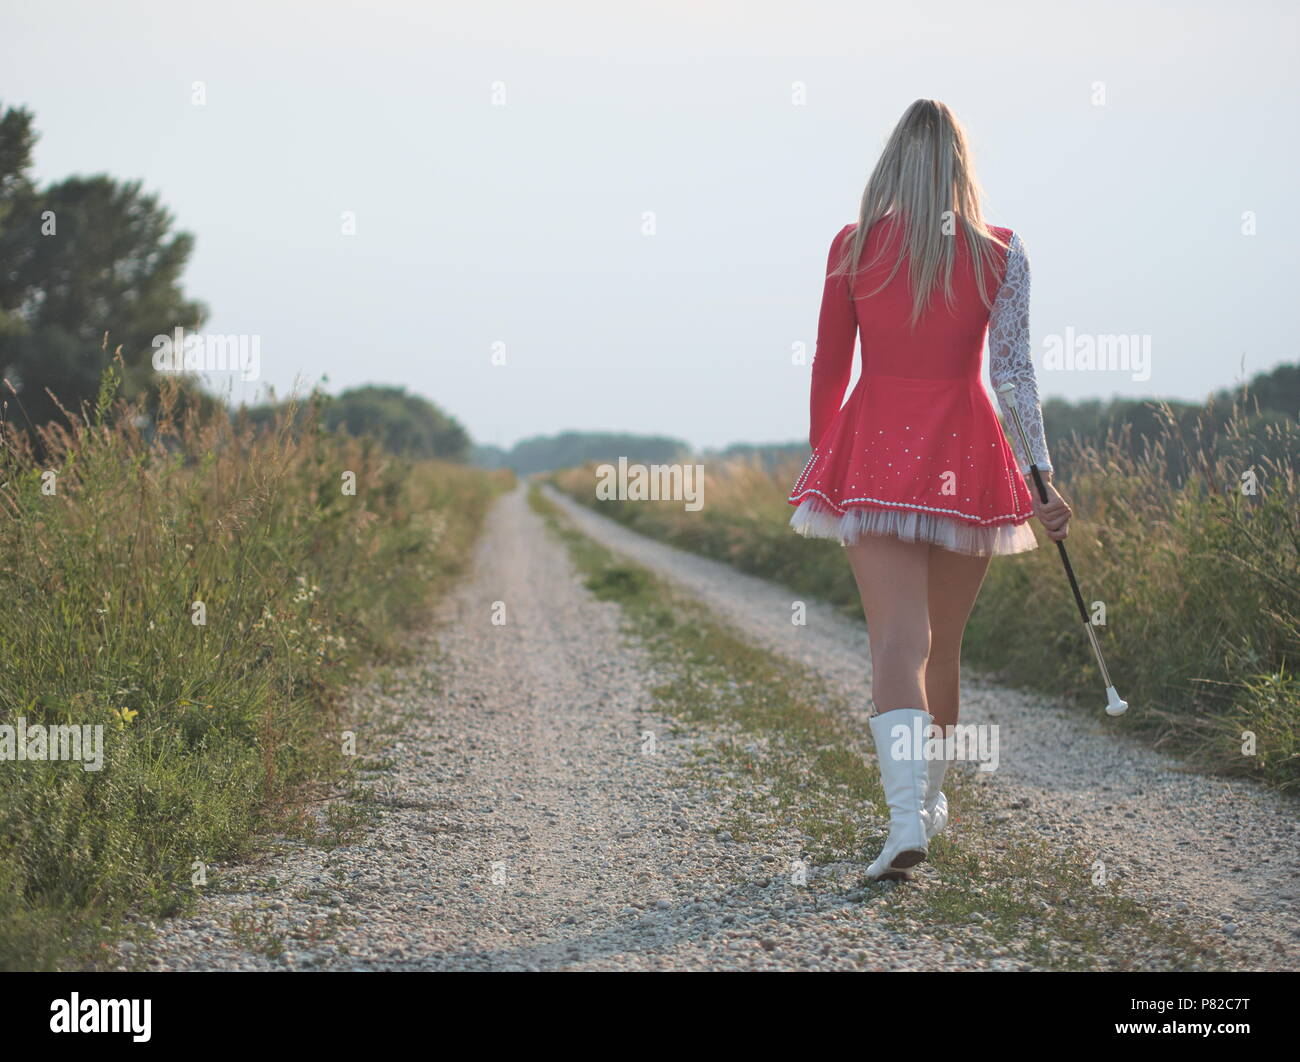 Blonde Teen Majorette Girl Twirling Baton Outdoors in Red Dress - Stock Image